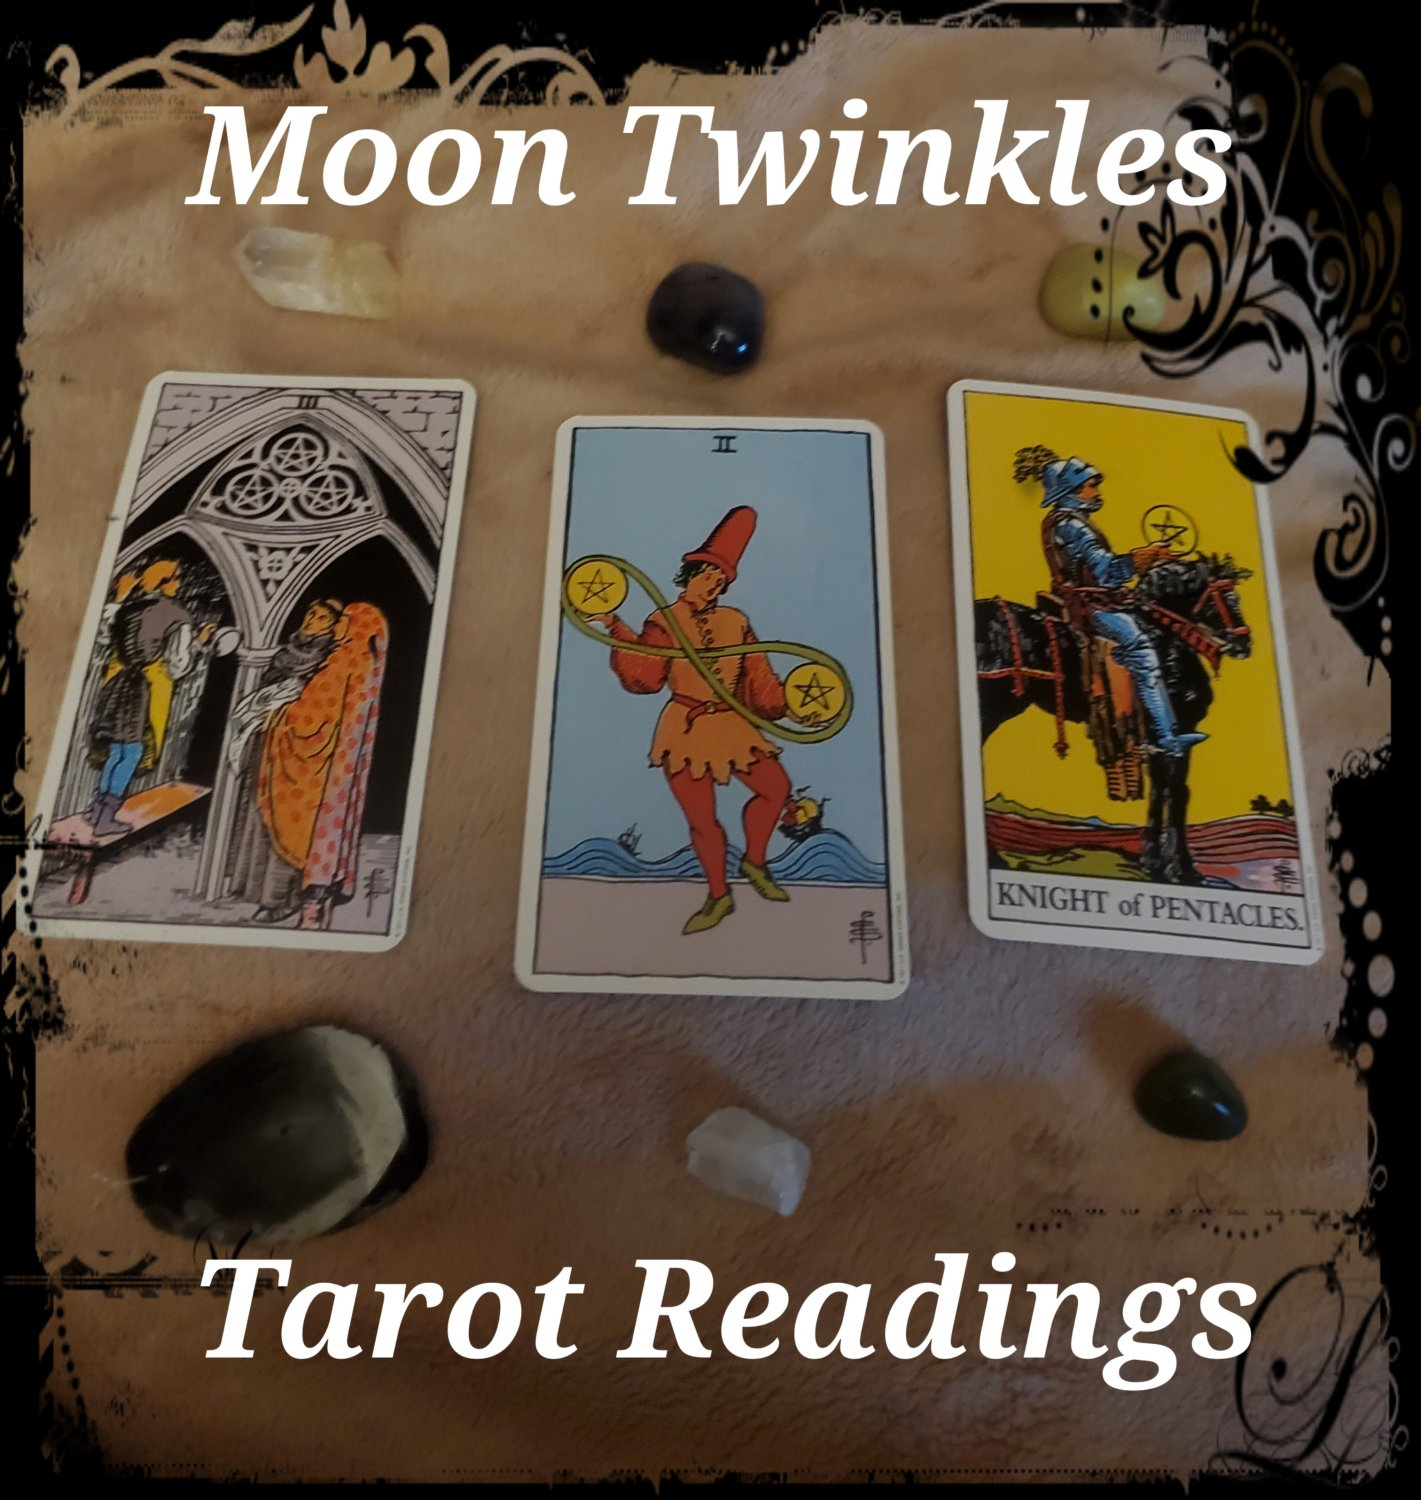 What is my life's purpose? Tarot Reading